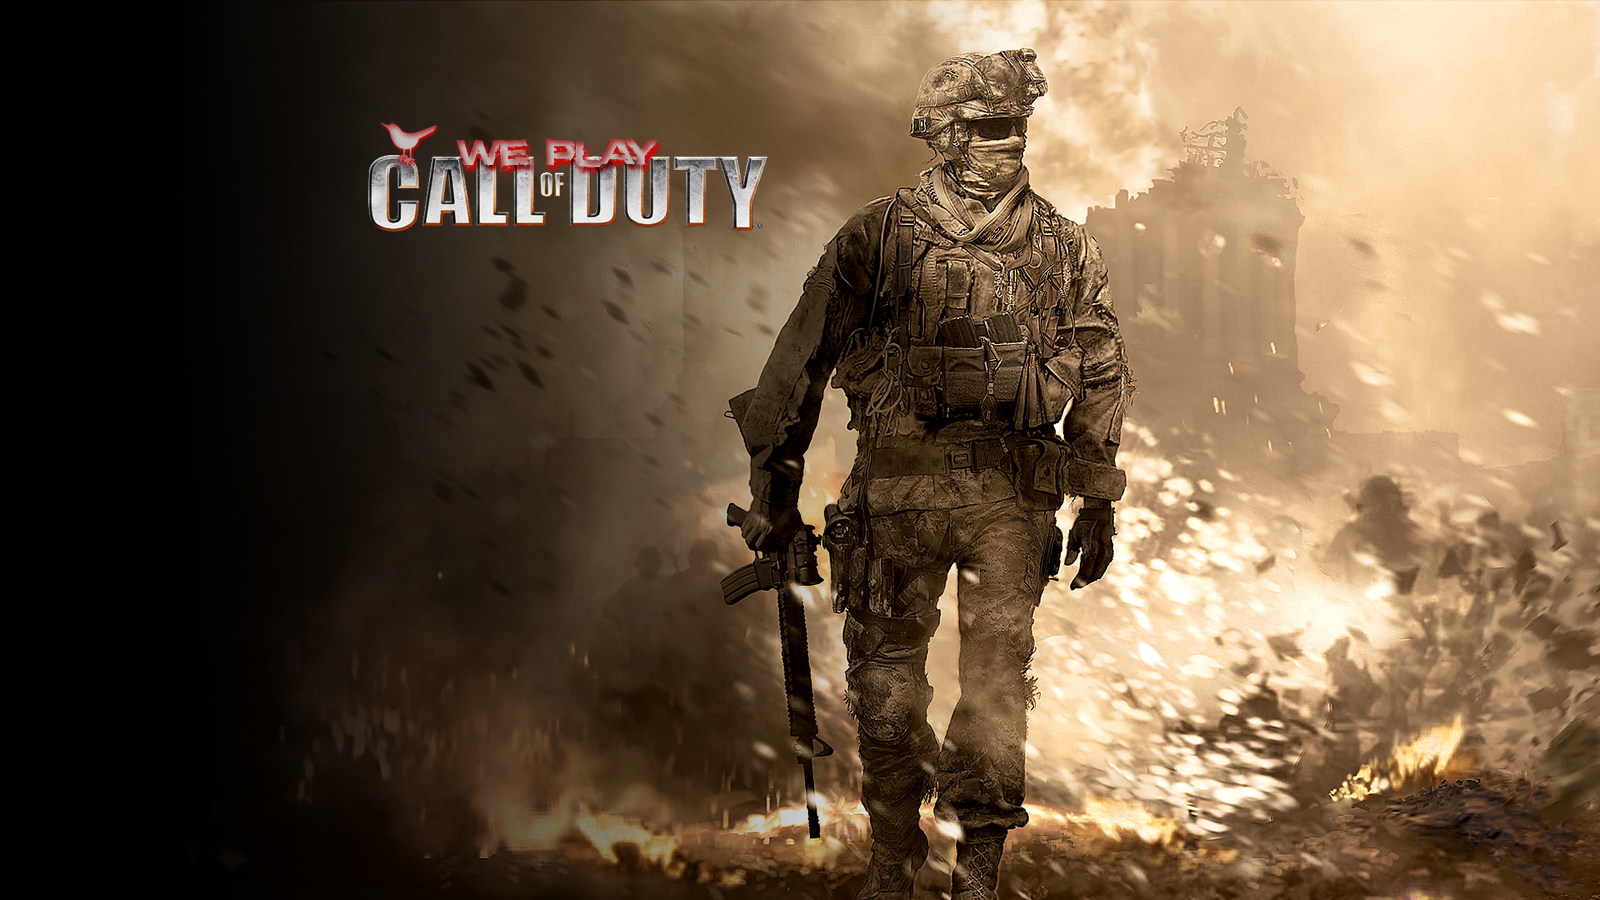 COD WAW Wallpapers